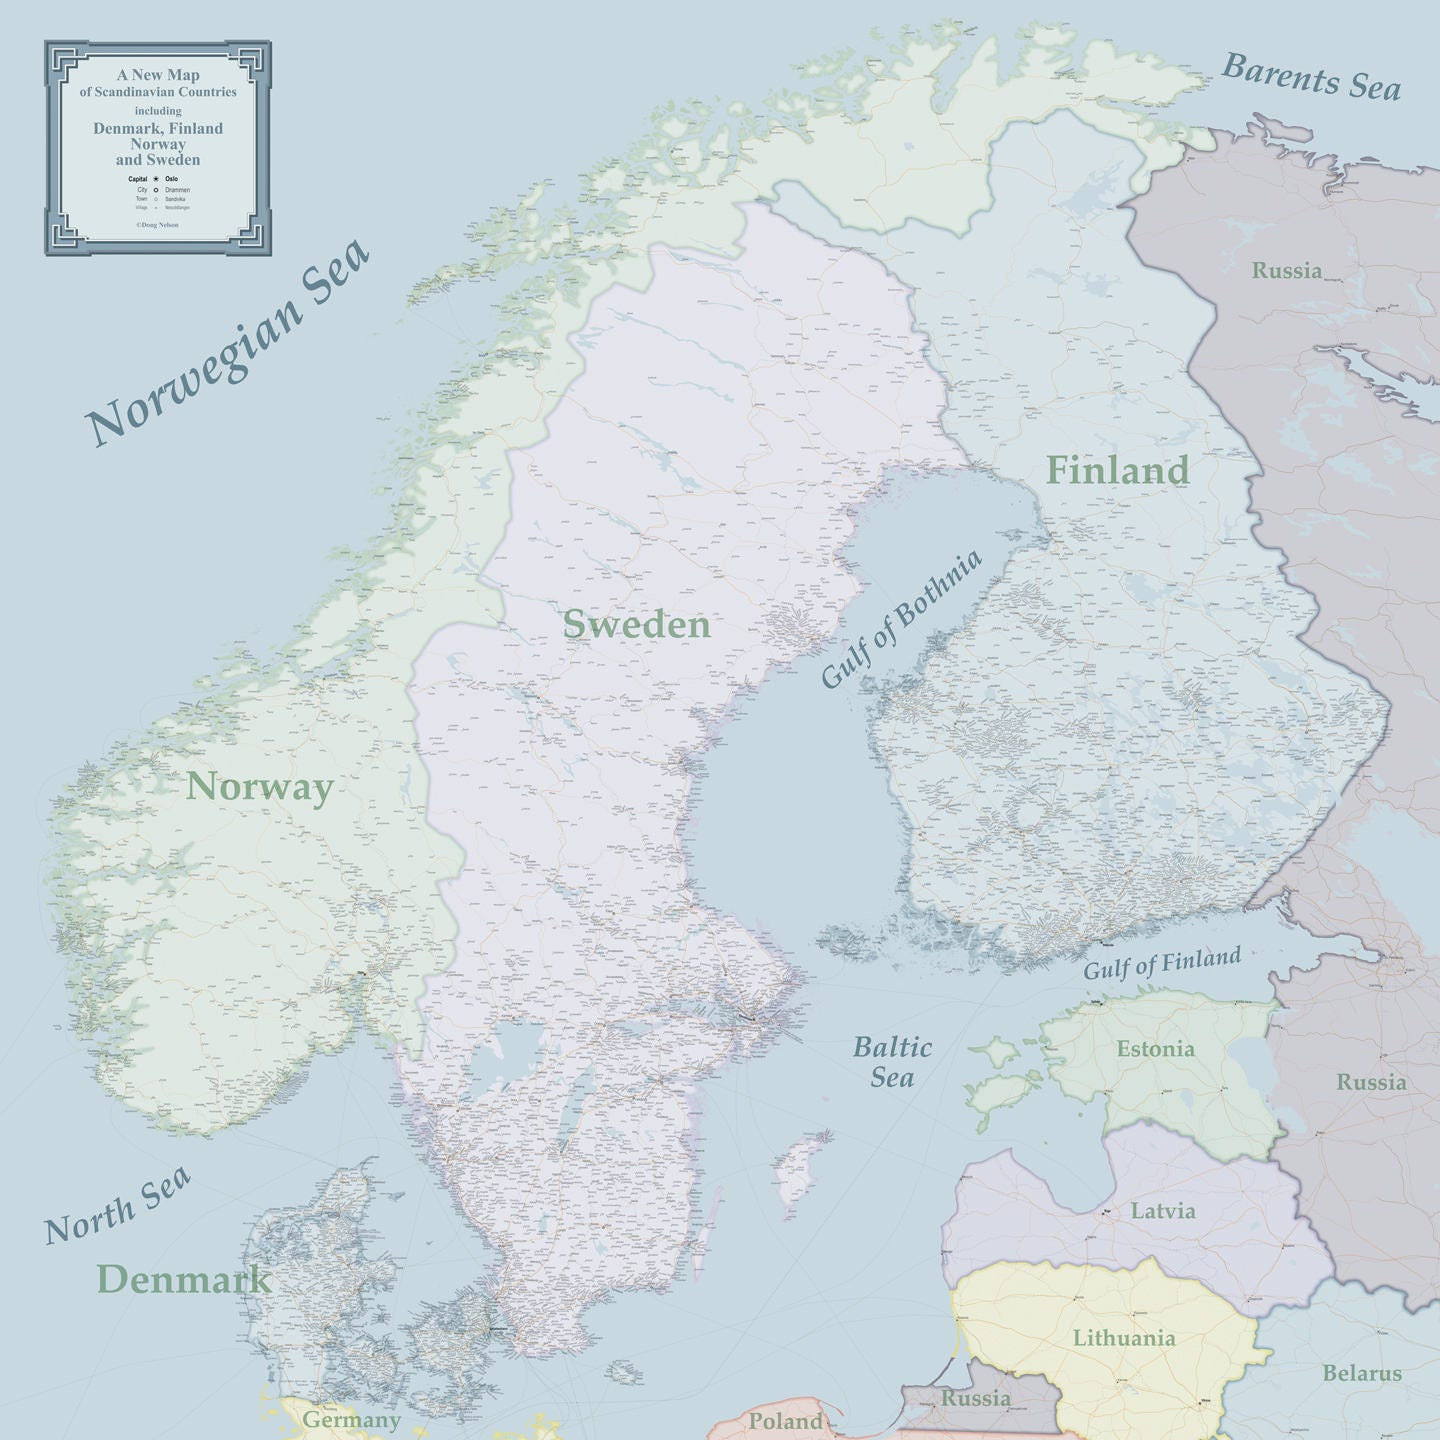 image relating to Scandinavia Map Printable called Major Scandinavia Wall Map Print 41x41, Satin Paper Wall Map